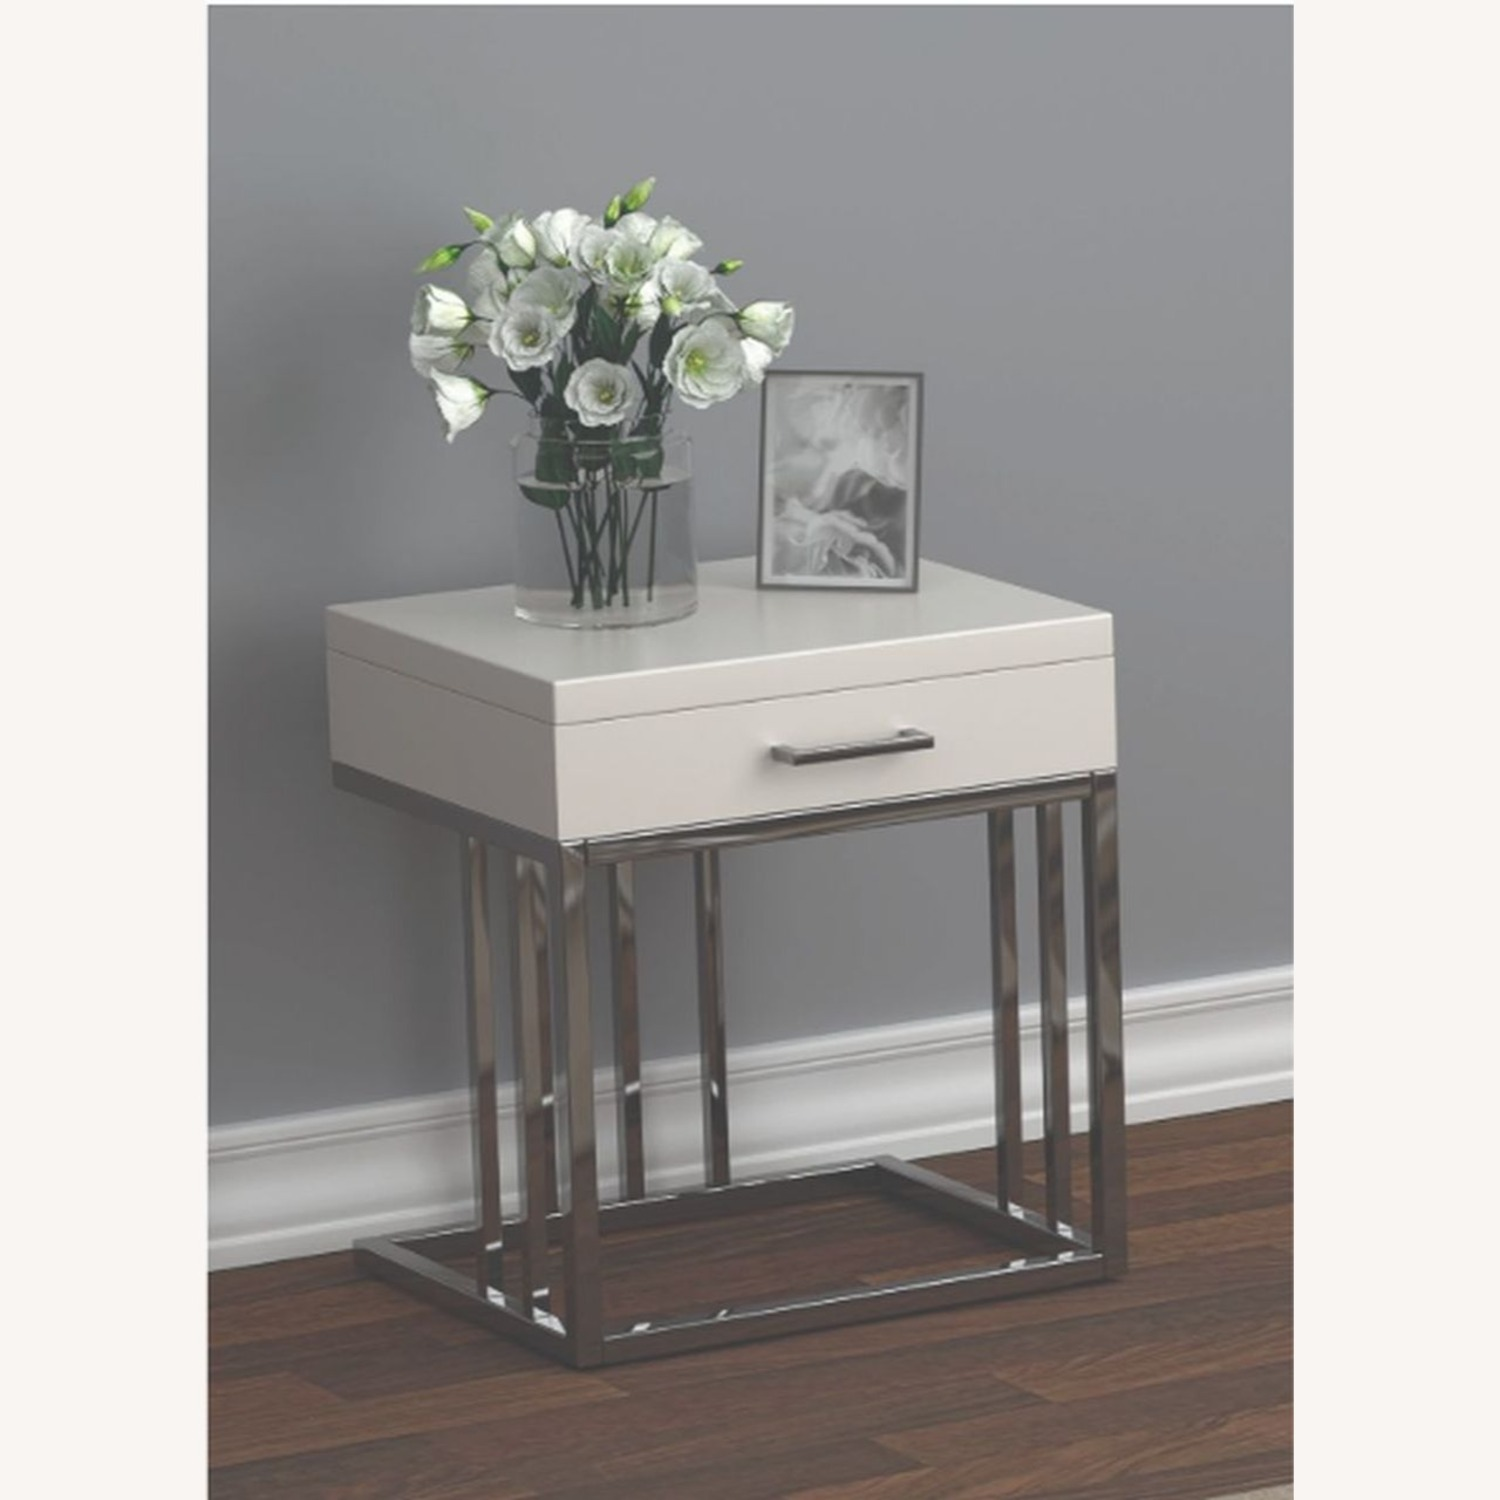 Modern End Table W/ Glossy White Tabletop - image-3